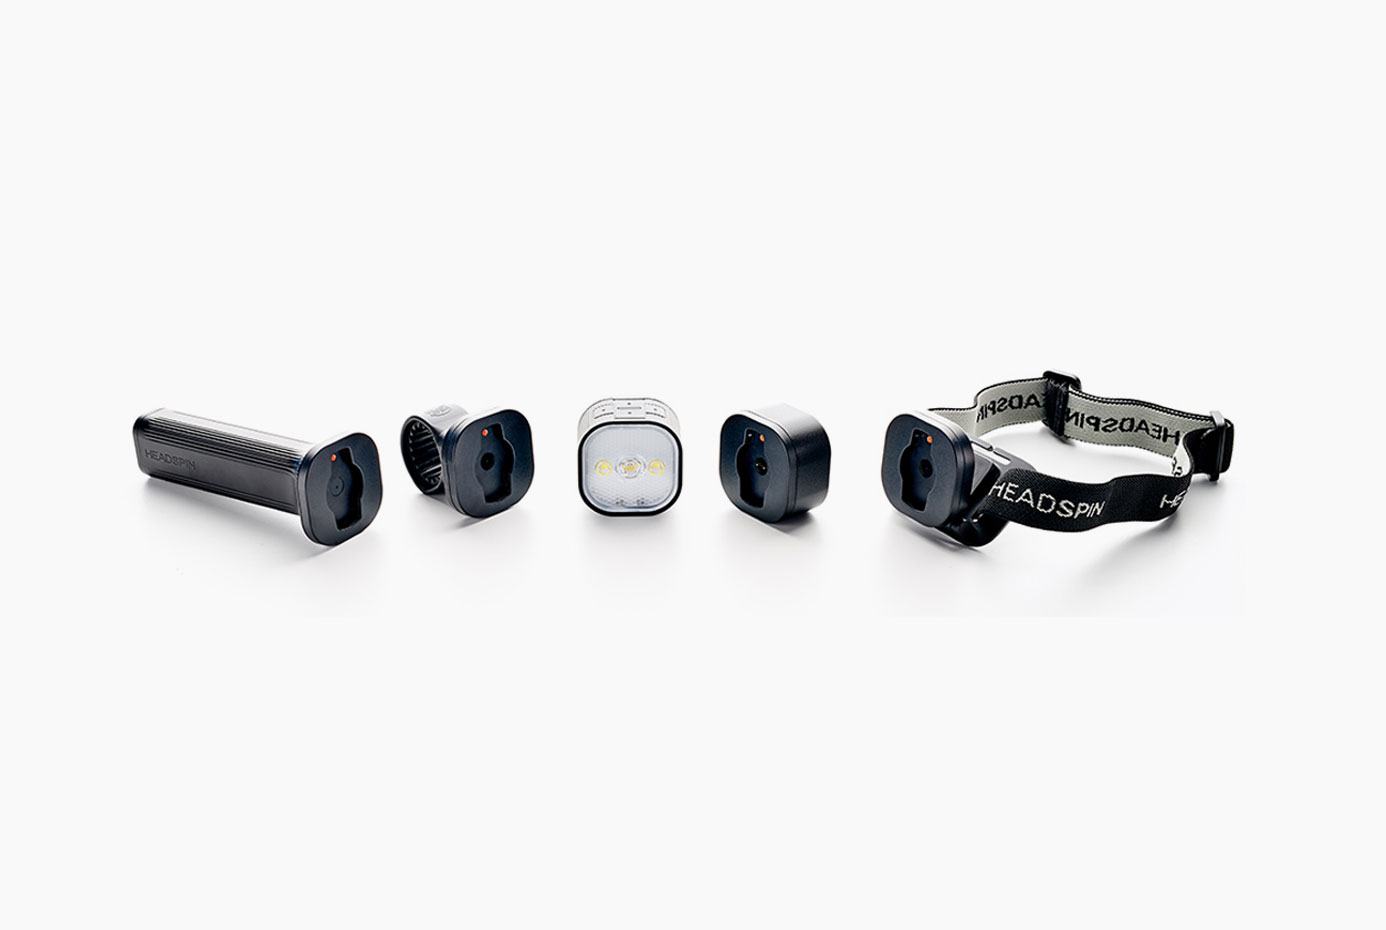 Headspin Convertible Lighting system - Outdoorsmen require versatility. Equipped with a magnetic attachment system called SPINDOCK, this revolutionary convertible lighting system can be used as a flashlight, headlamp, or even as a standalone light. Darkness is no longer a limitation.